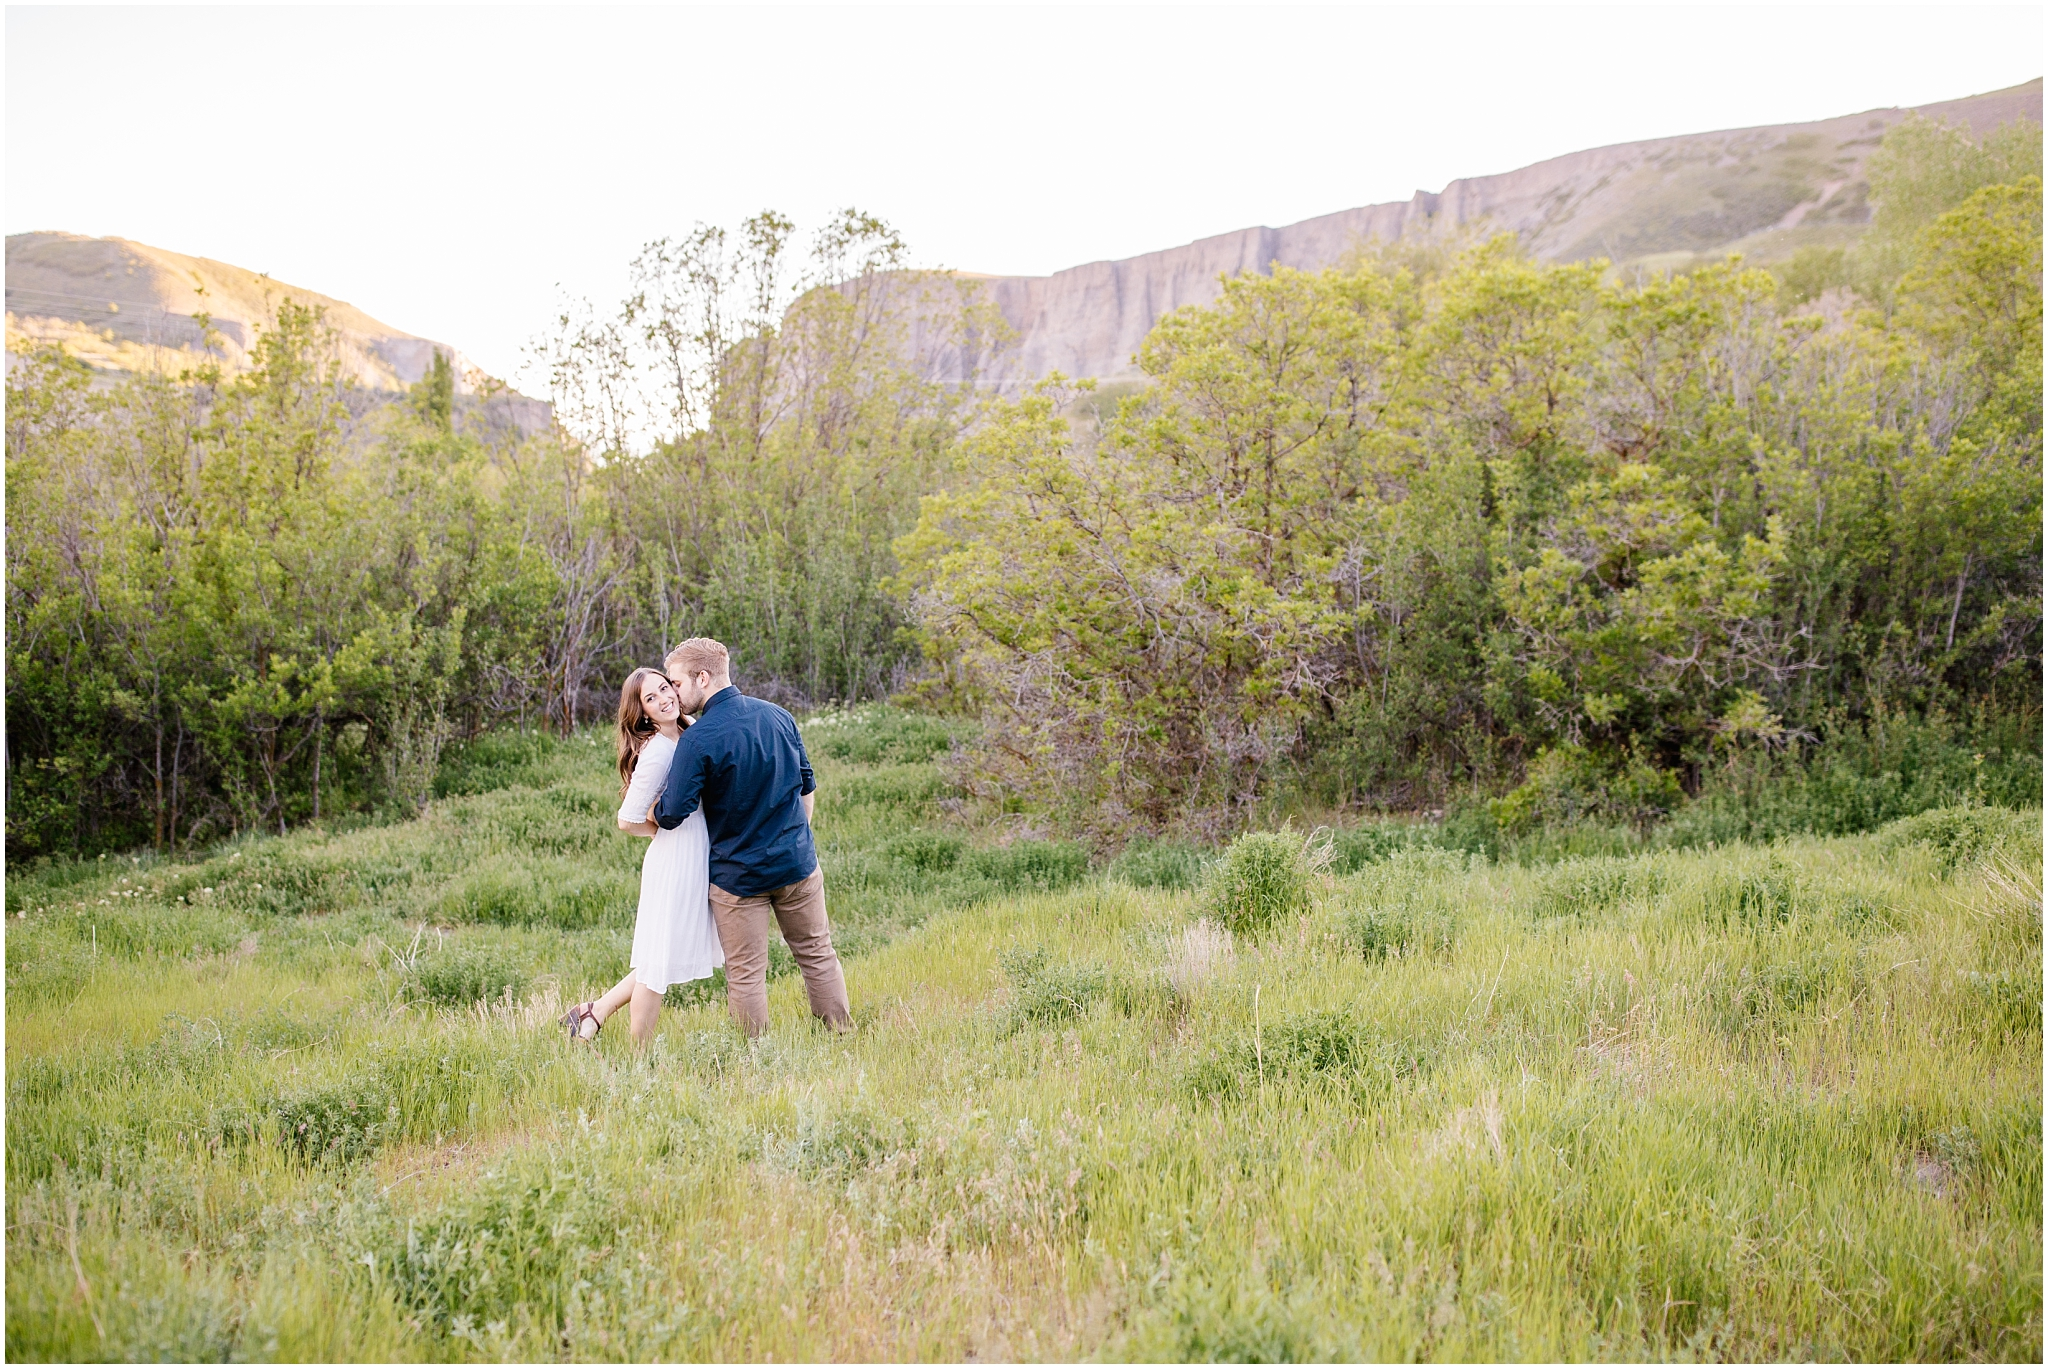 Lizzie-B-Imagery-Utah-Wedding-Photographer-Thanksgiving-Point-Payson-Temple_0148.jpg